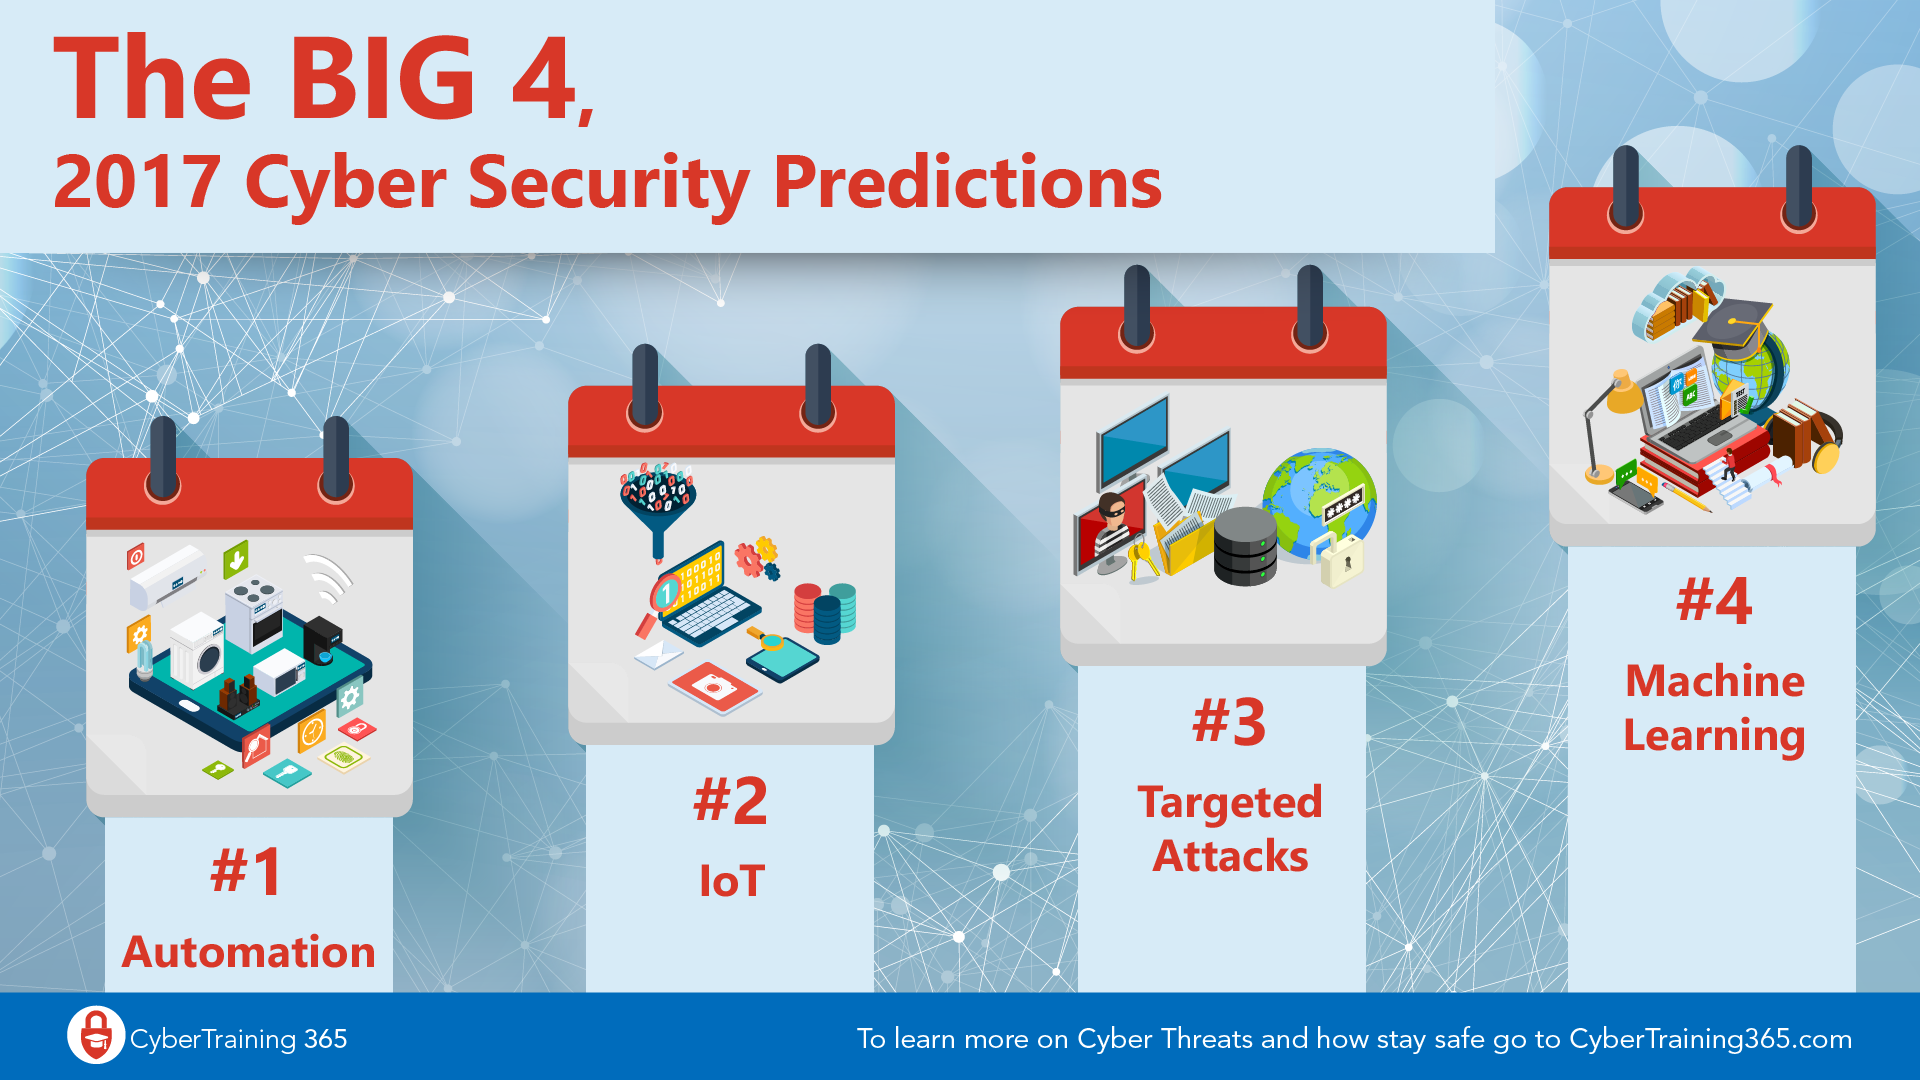 The Big Four 2017 Cyber Security Predictions